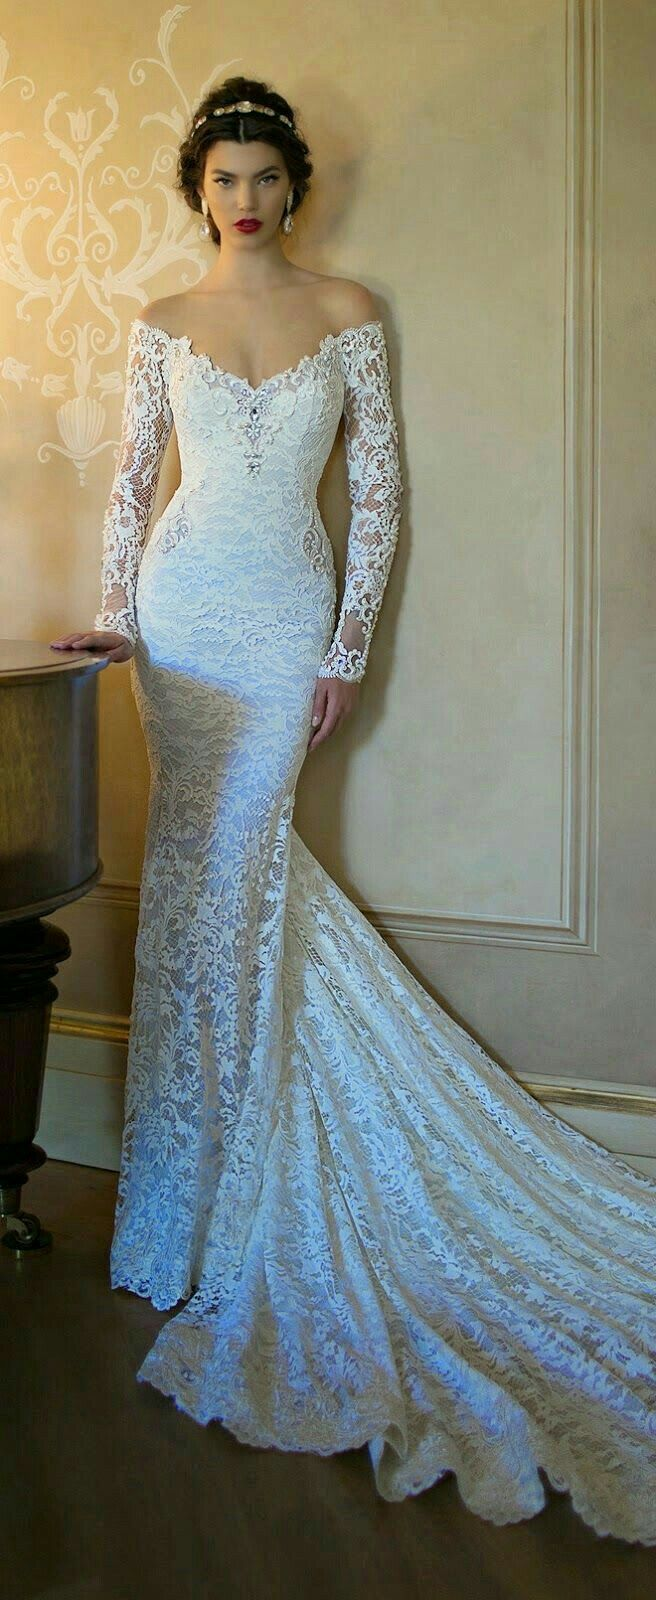 375 best Inspiración para bodas images on Pinterest | Vestidos de ...